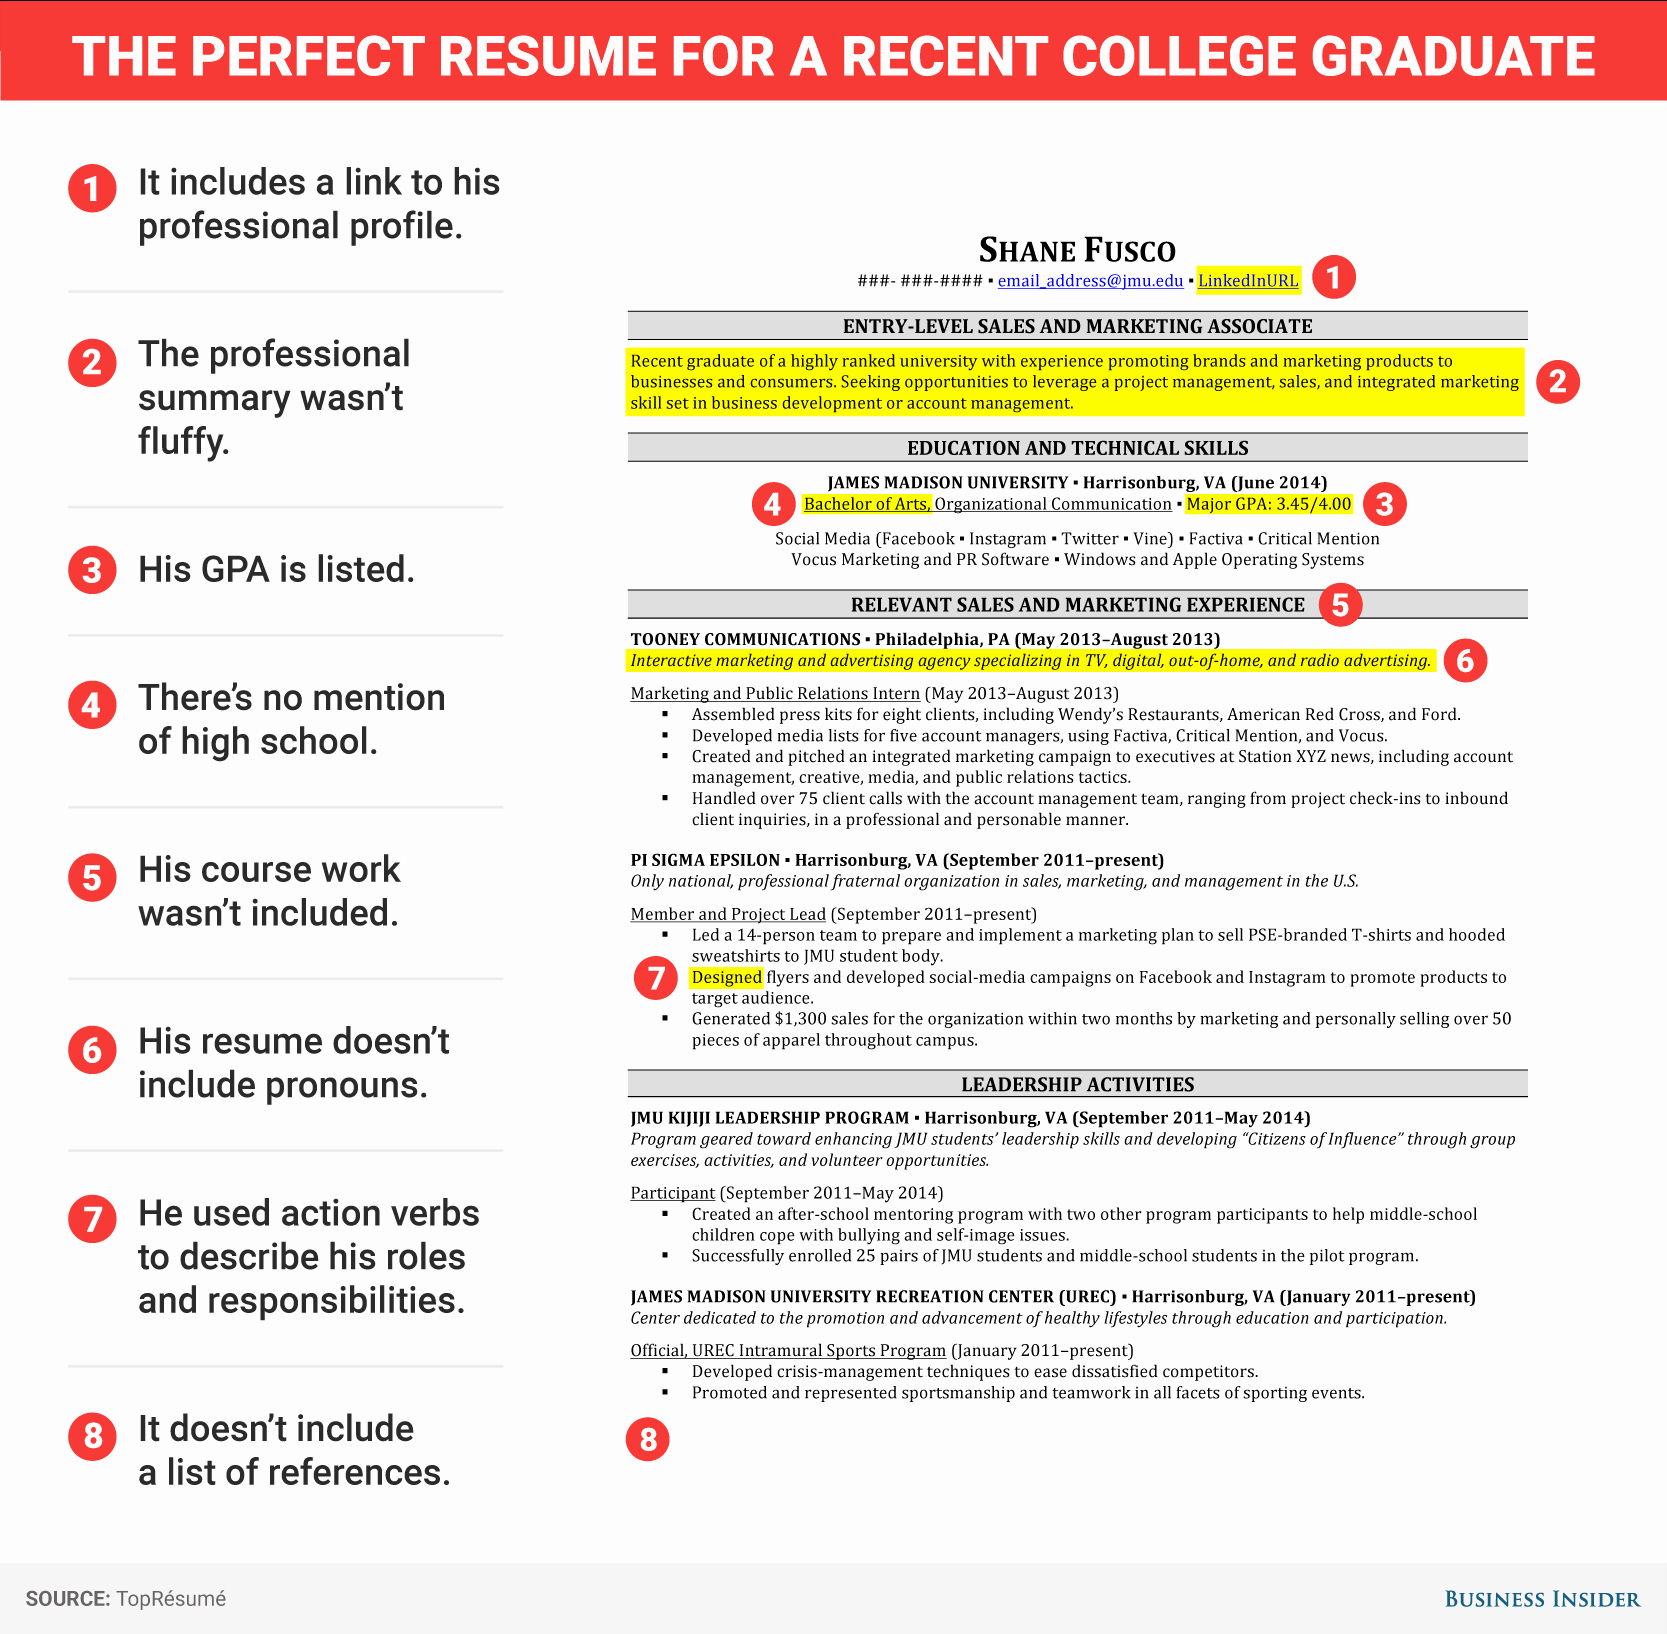 Resume for New College Graduate Awesome Excellent Resume for Recent College Grad Business Insider